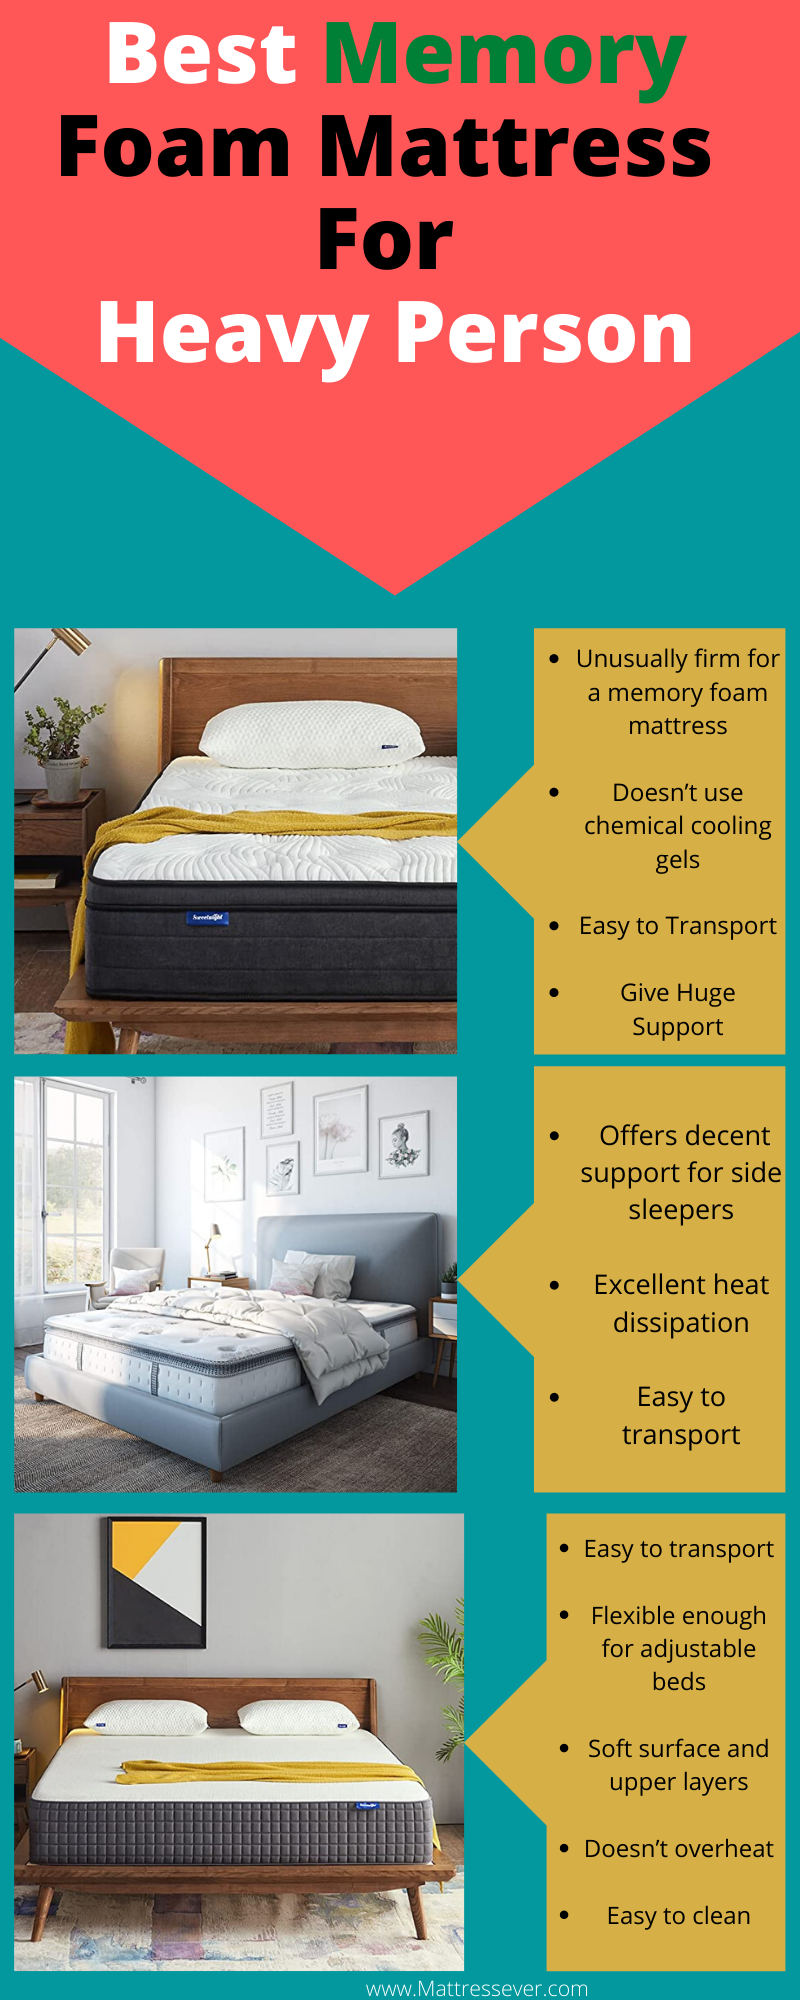 Best Memory Foam Mattress For Heavy Person  infographic